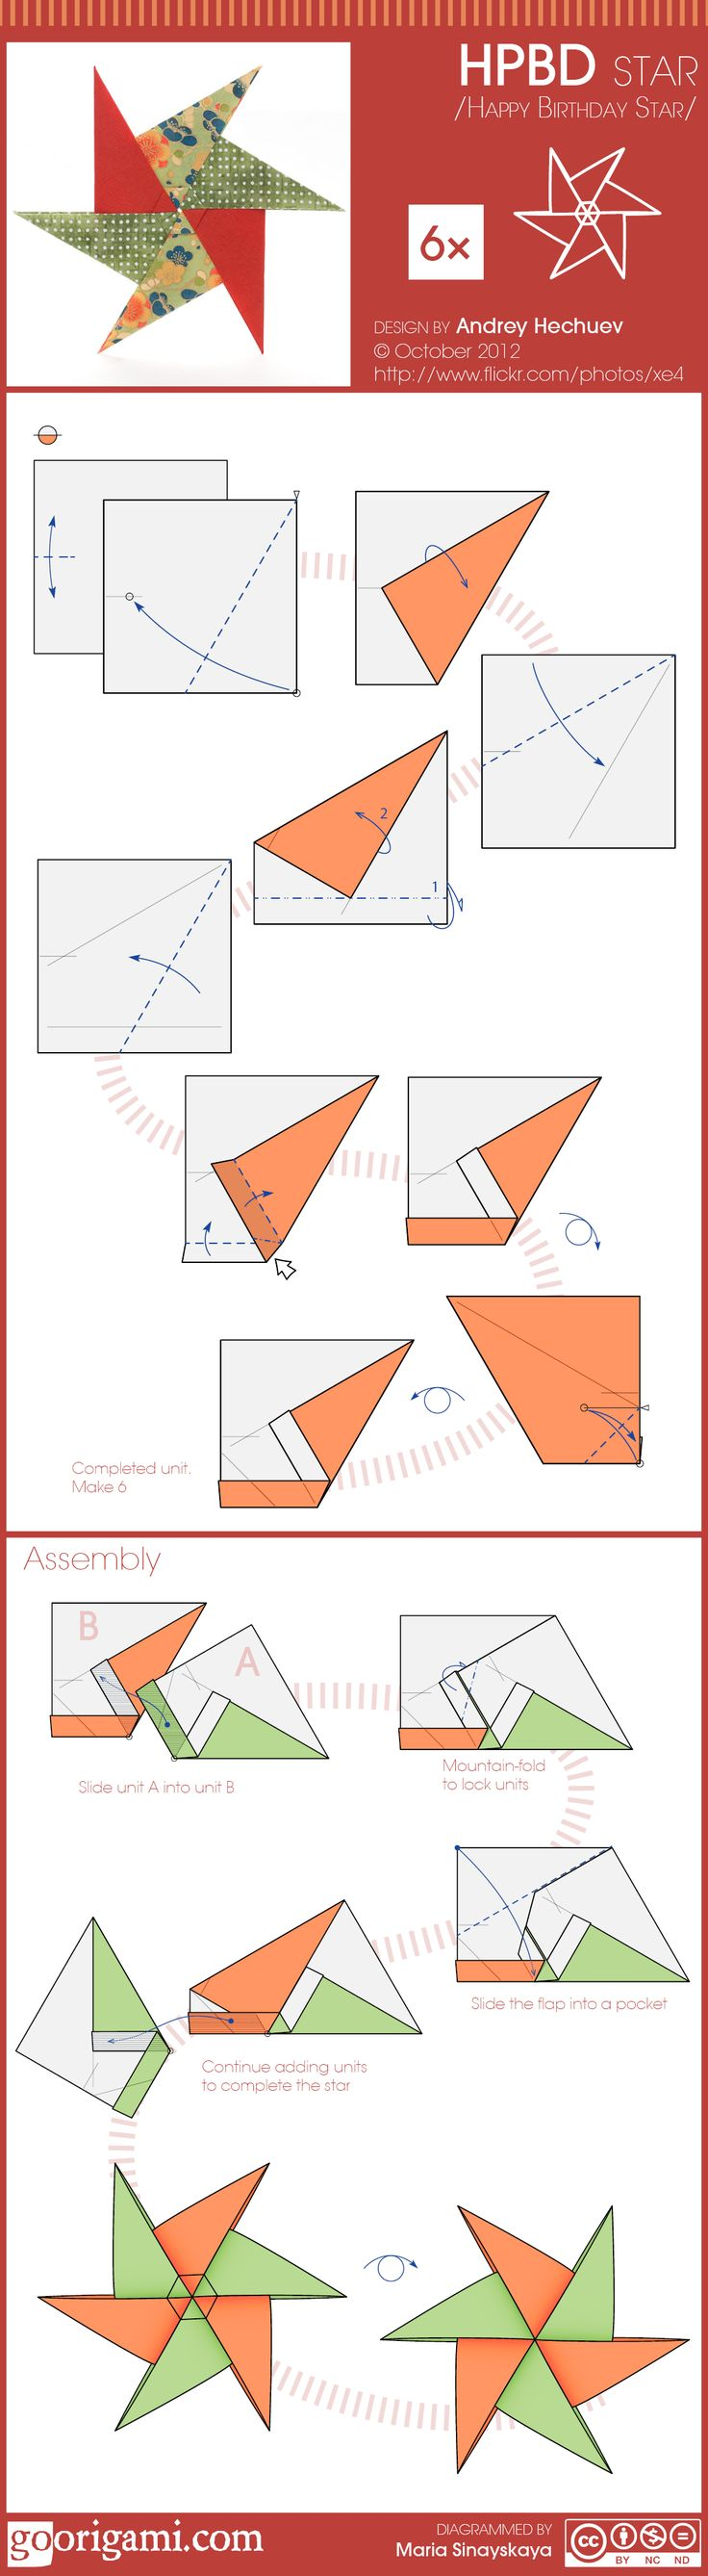 Learn Origami - Home | Facebook